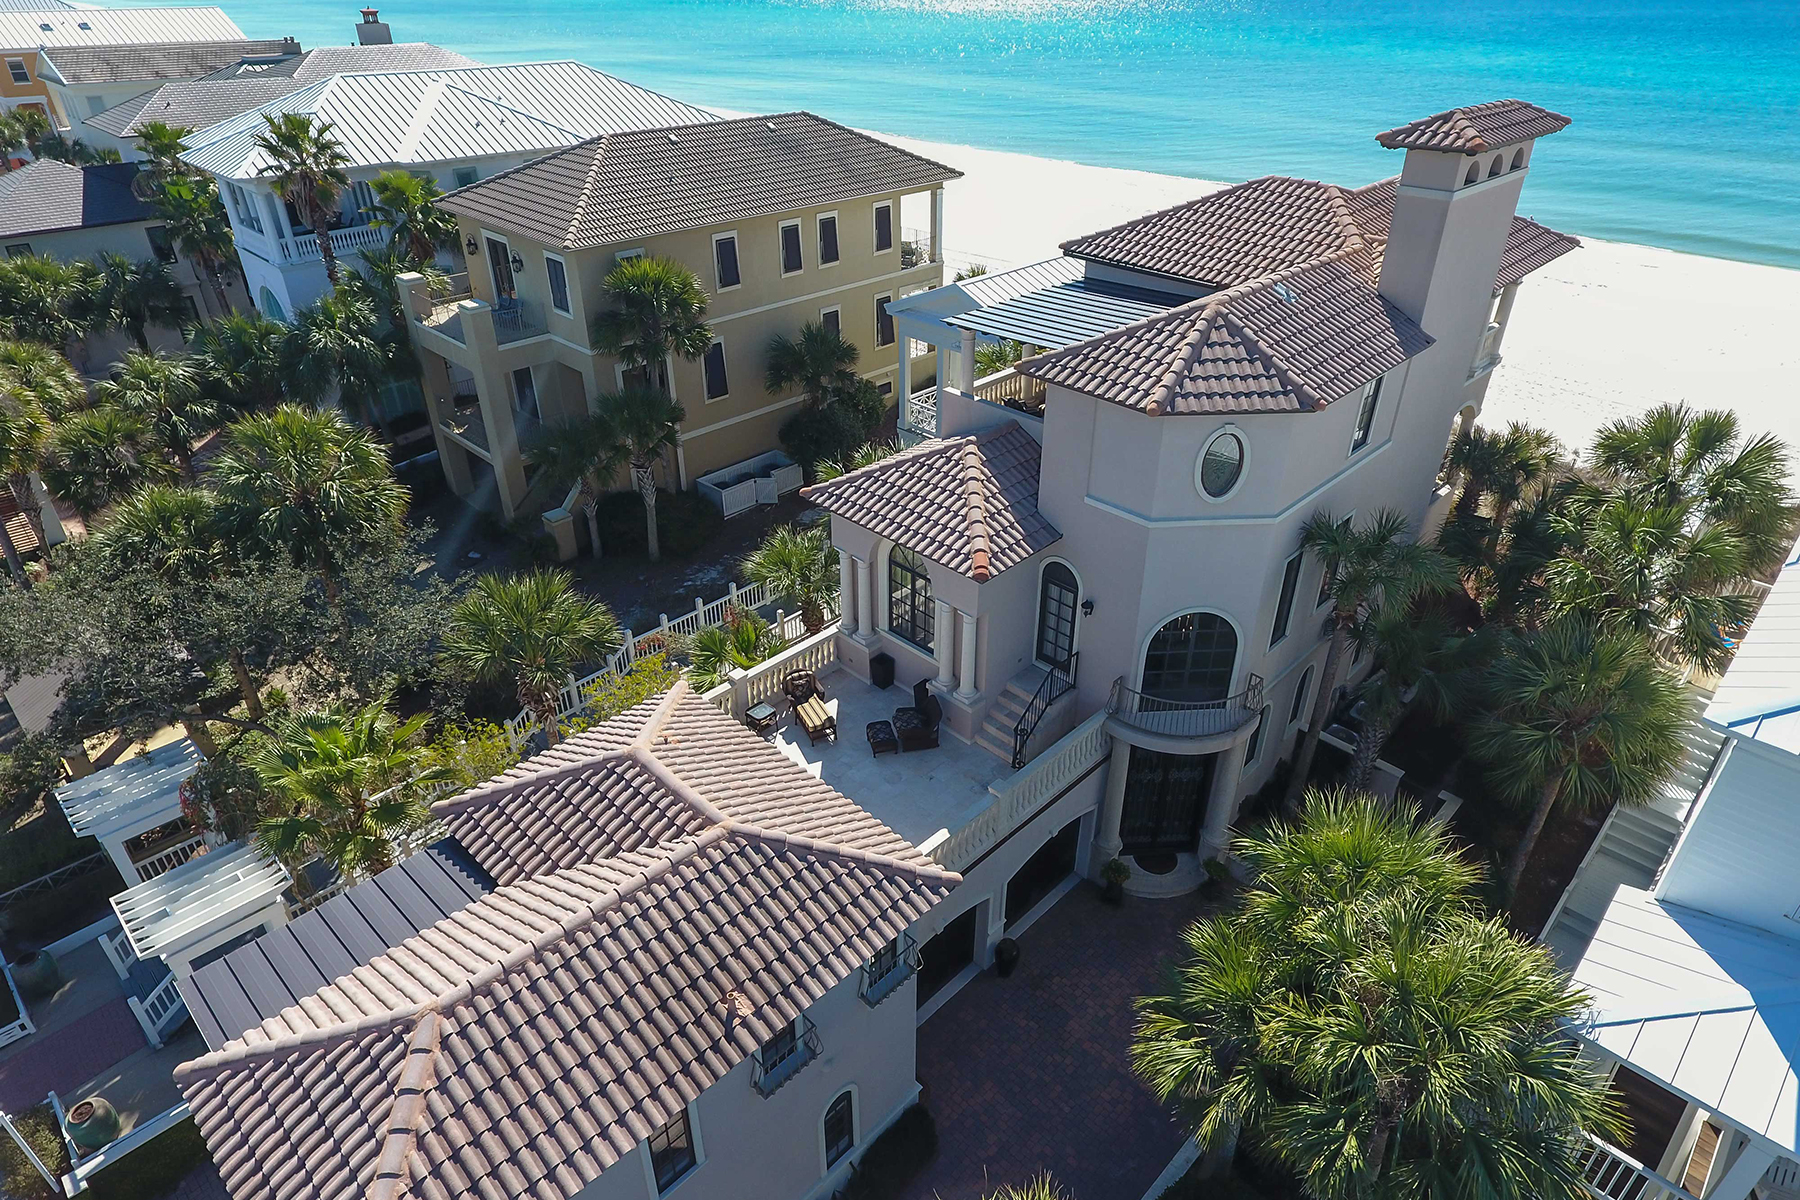 一戸建て のために 売買 アット OCEANFRONT LUXURY WITH MEDITERRANEAN CLASS AND STYLE 314 Beachside Drive Carillon Beach, Panama City Beach, フロリダ, 32413 アメリカ合衆国